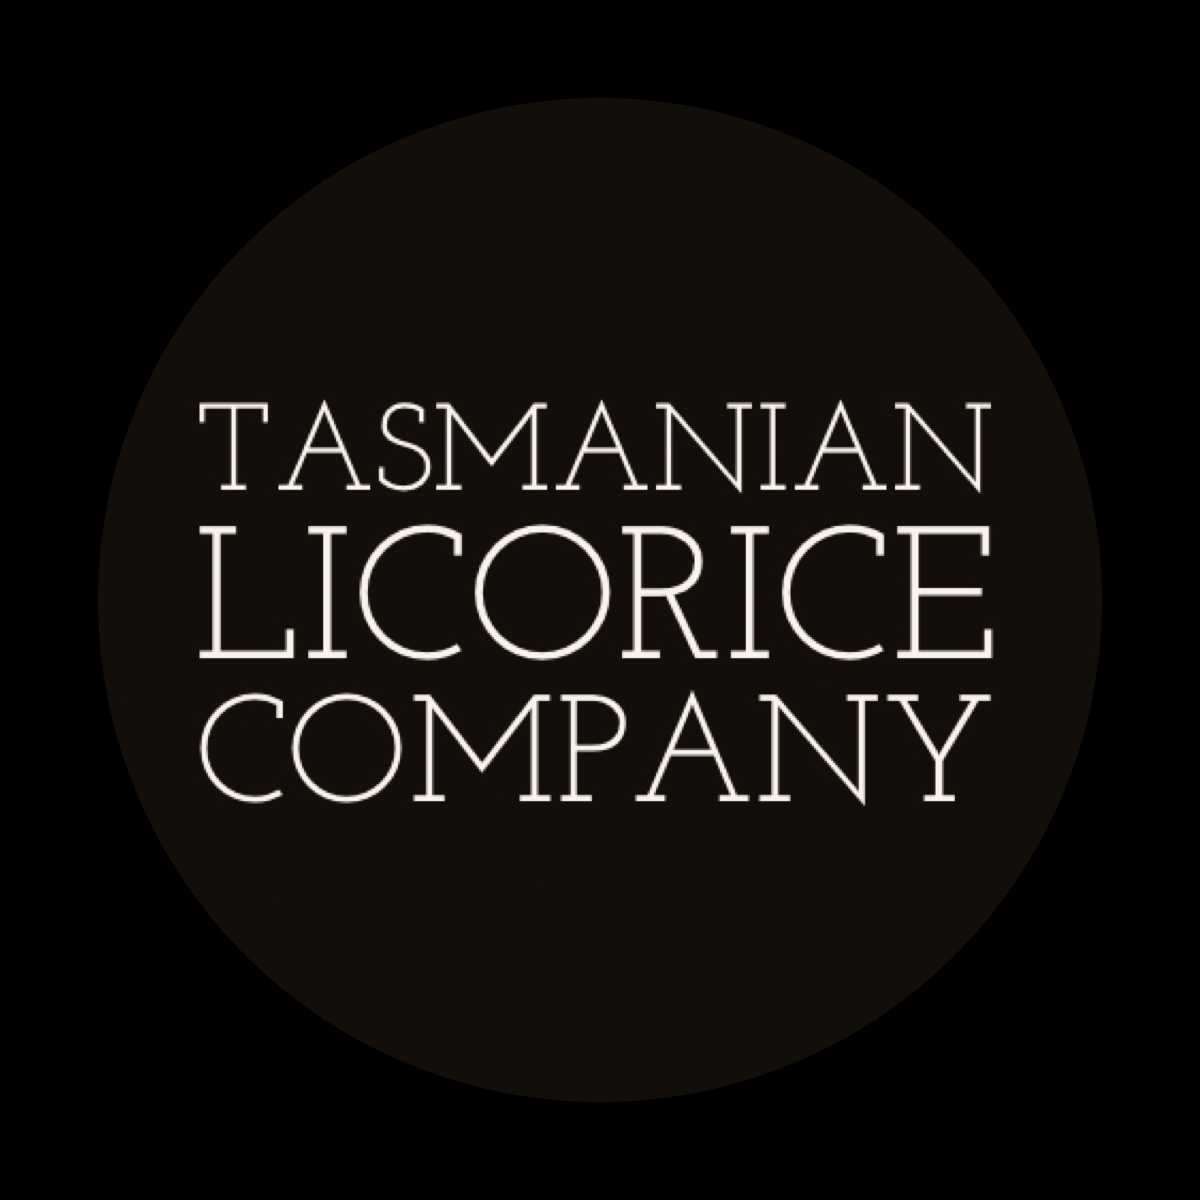 Tasmanian Licorice Company